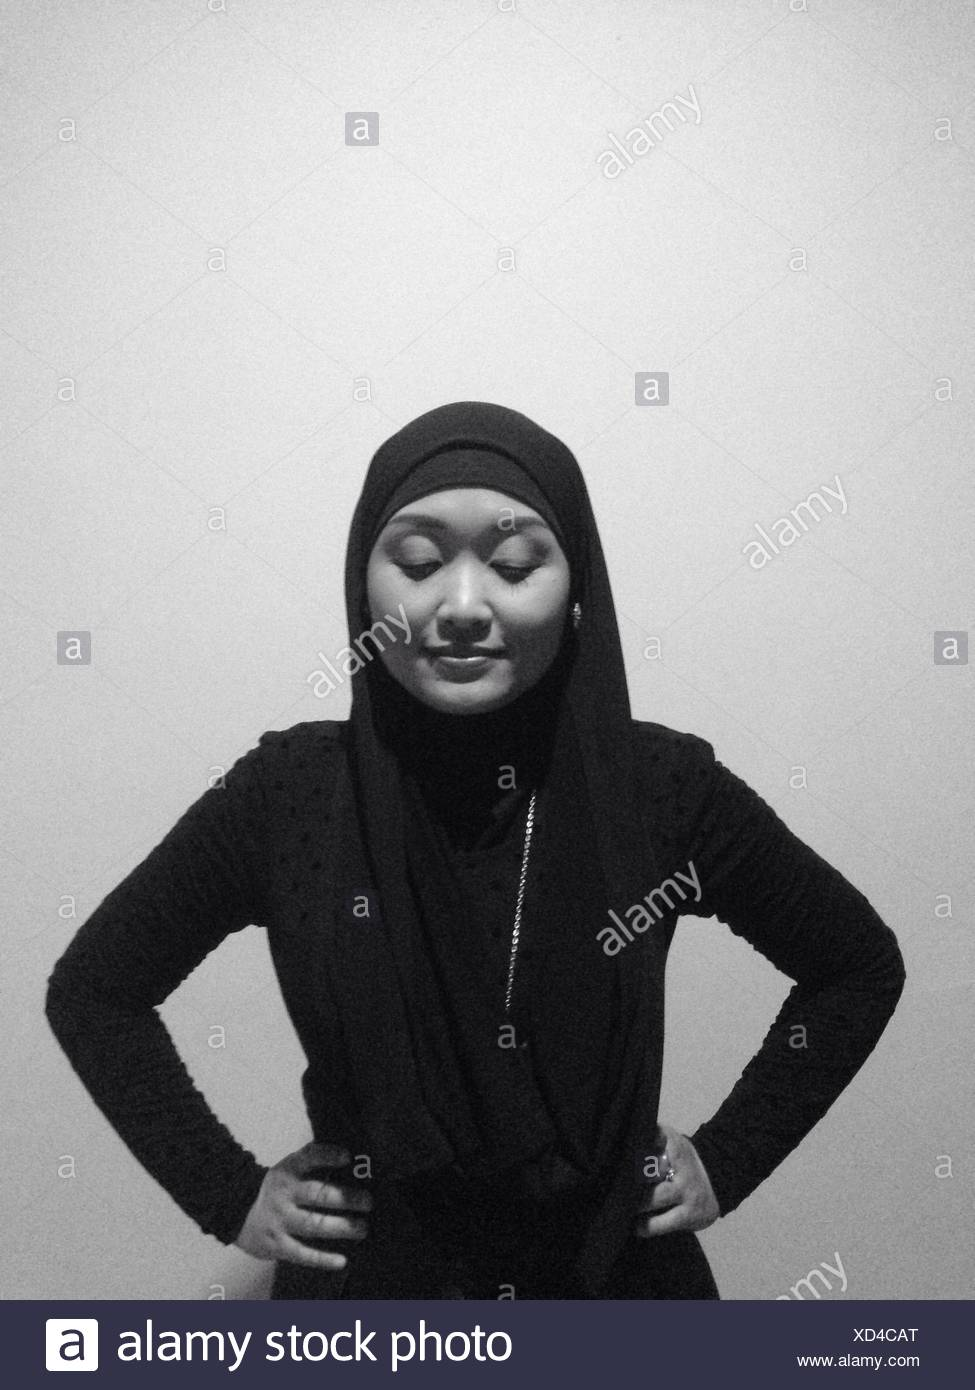 Studio Portrait Of Woman Wearing Black Hijab - Stock Image